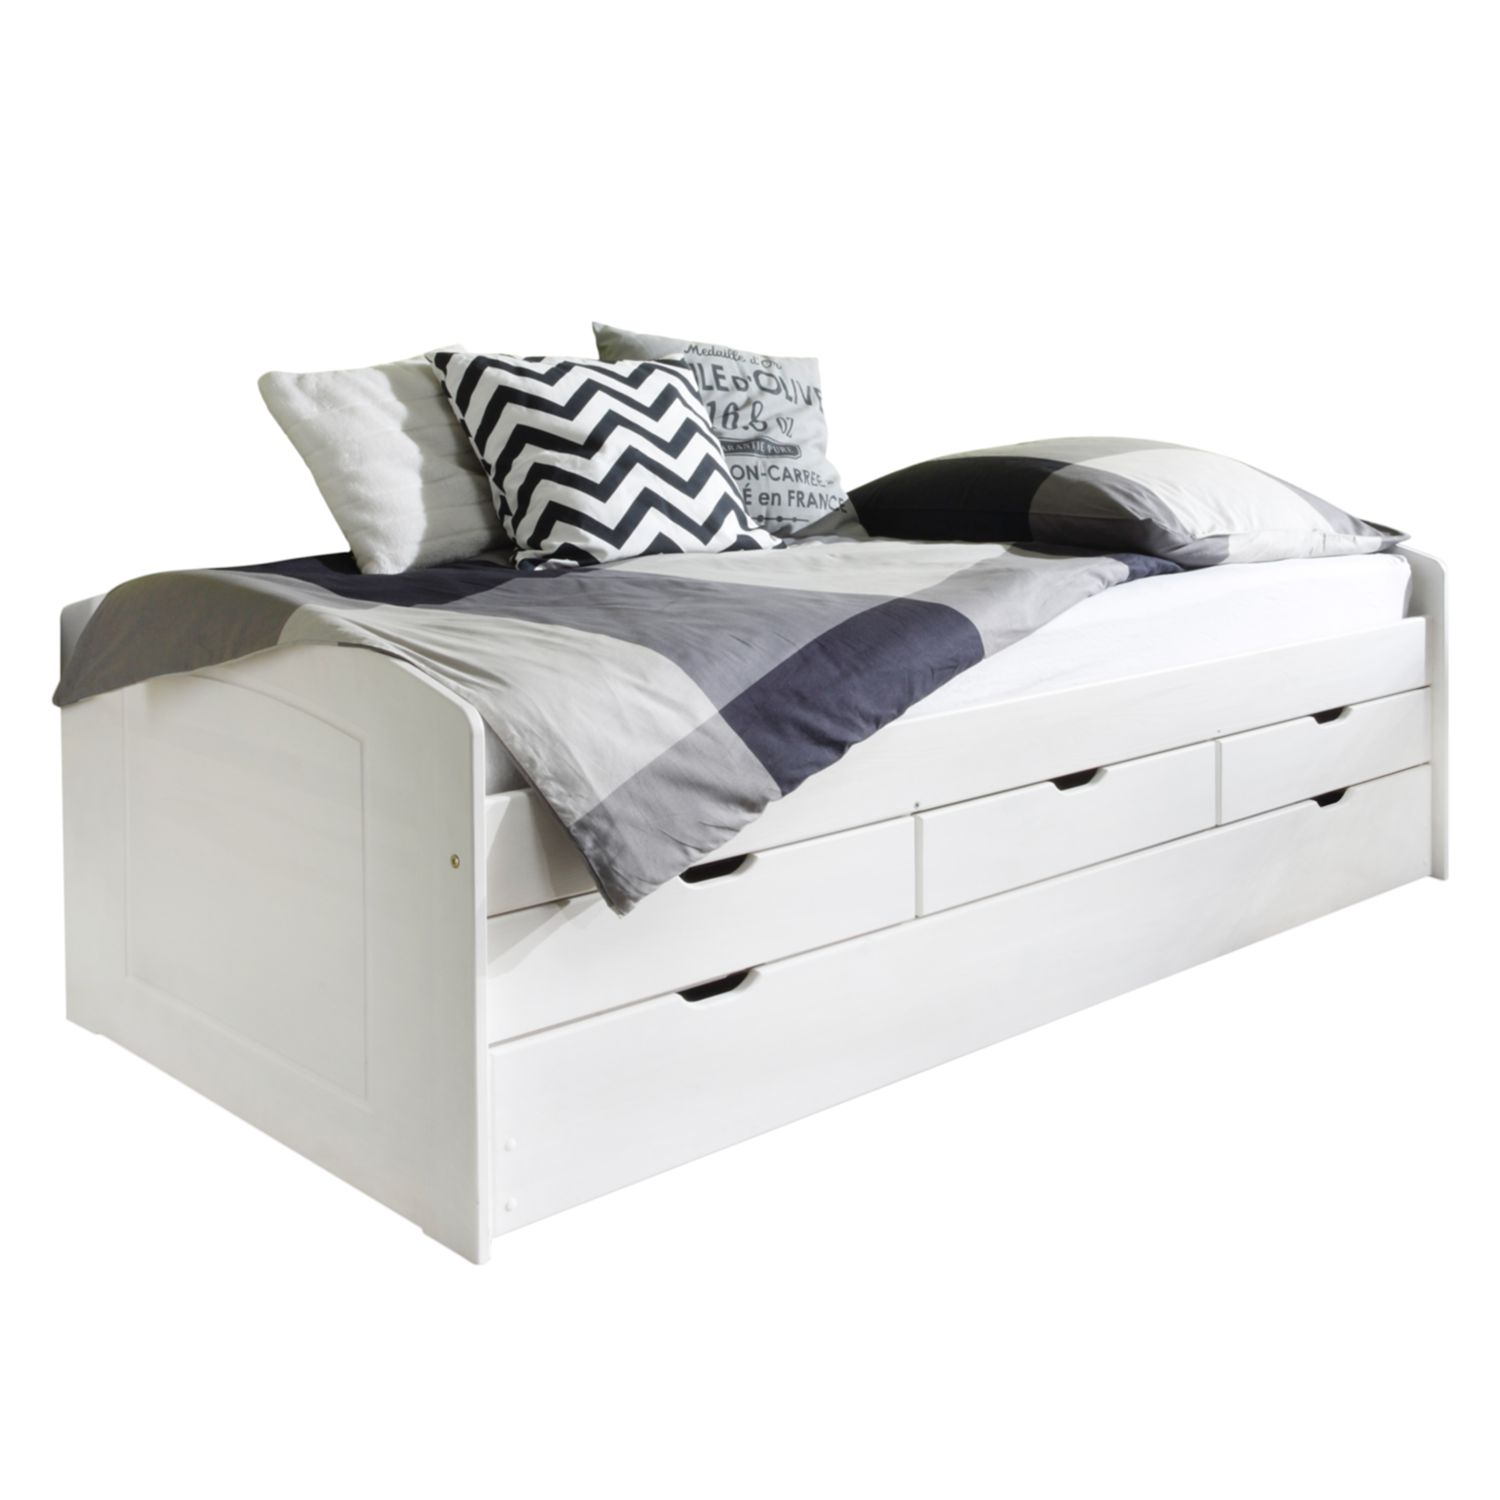 Lit multi-rangements Jessy - Pin massif - Blanc, mooved